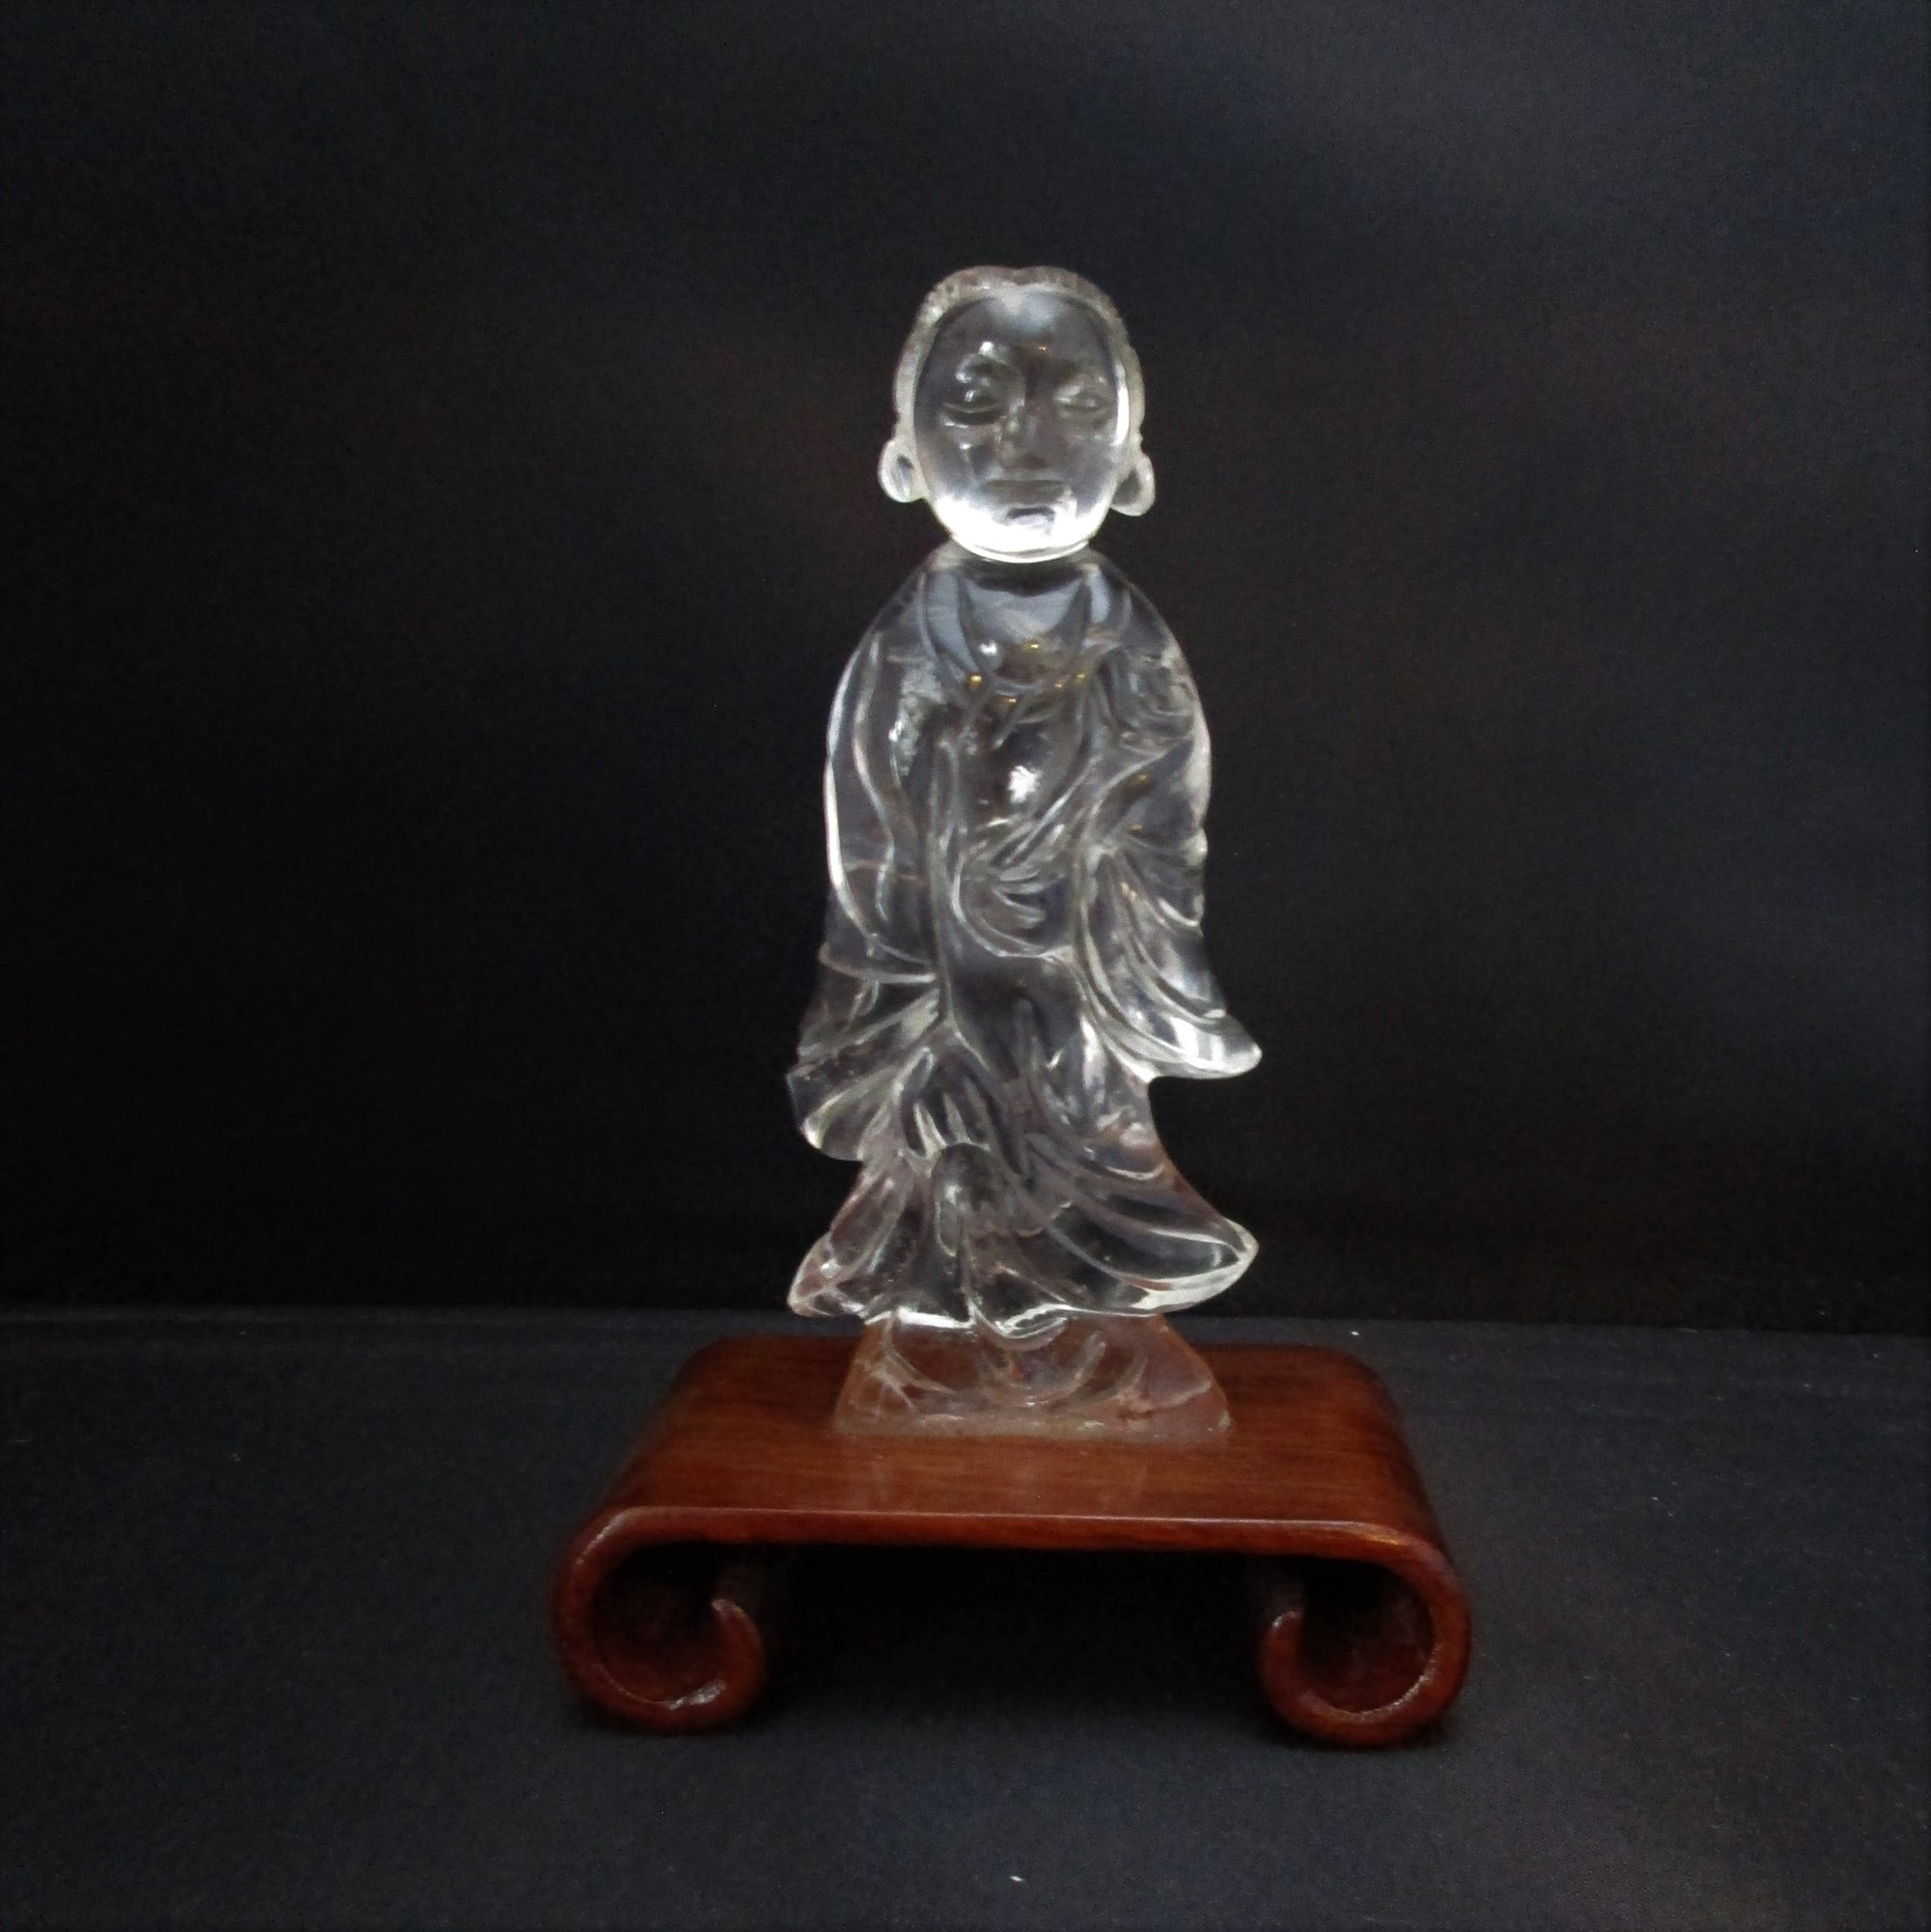 Chinese Carved Crystal Figure of Lady Antique 19th Century.